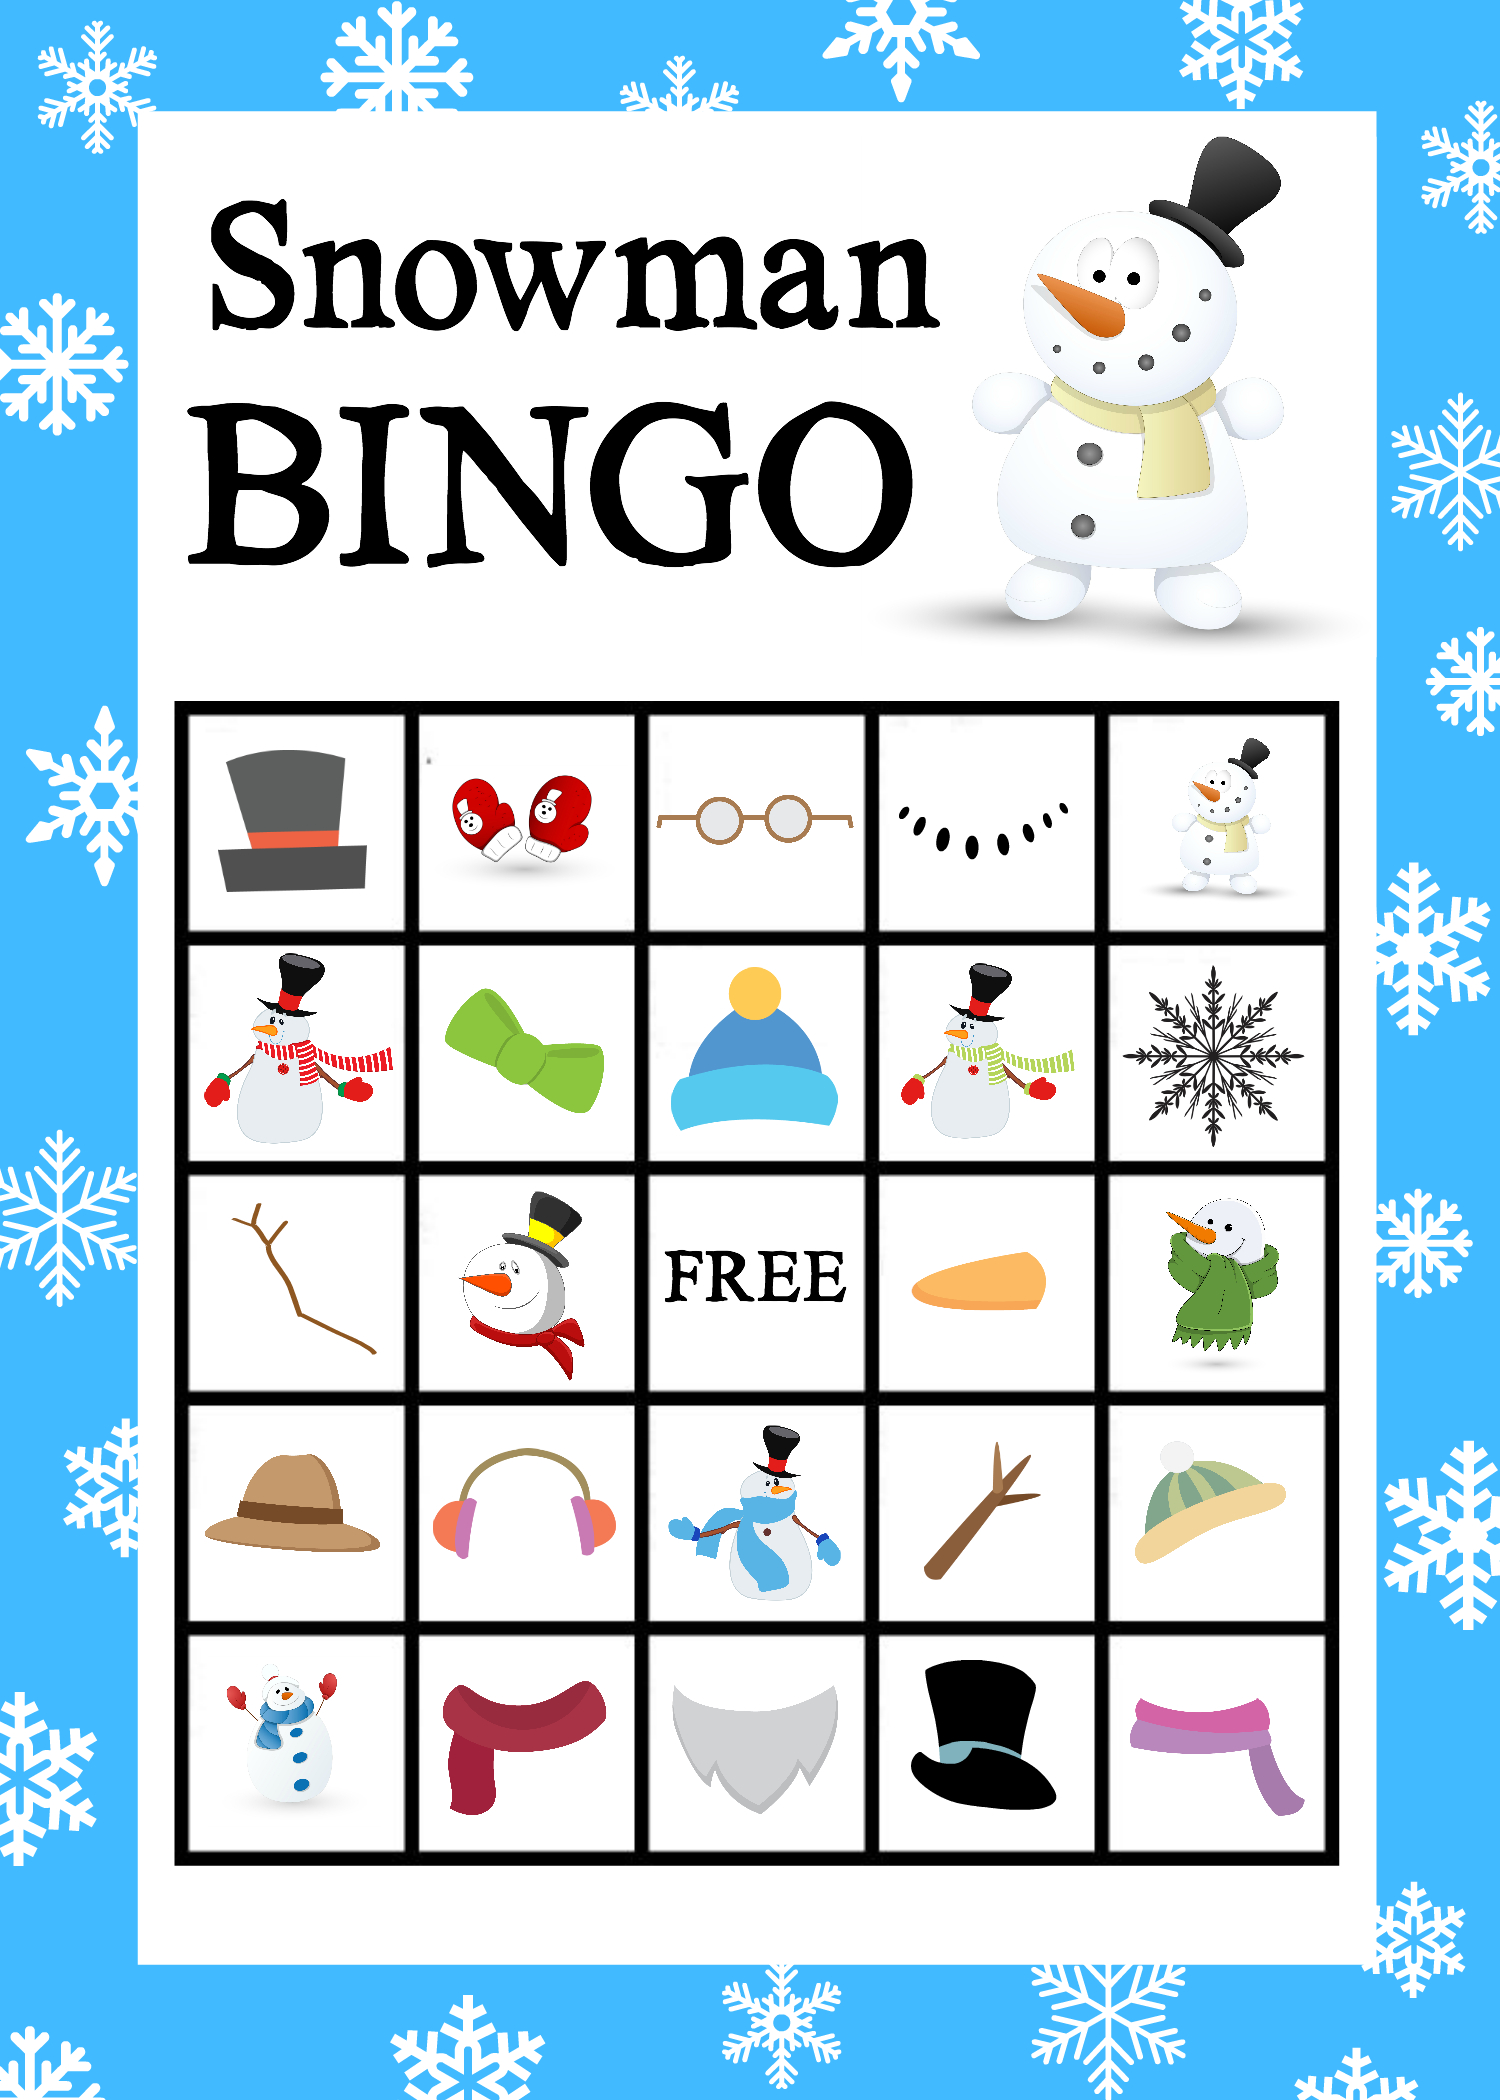 Free Printable Snowman Bingo Game | Winter Bliss | Christmas Bingo - Winter Bingo Cards Free Printable